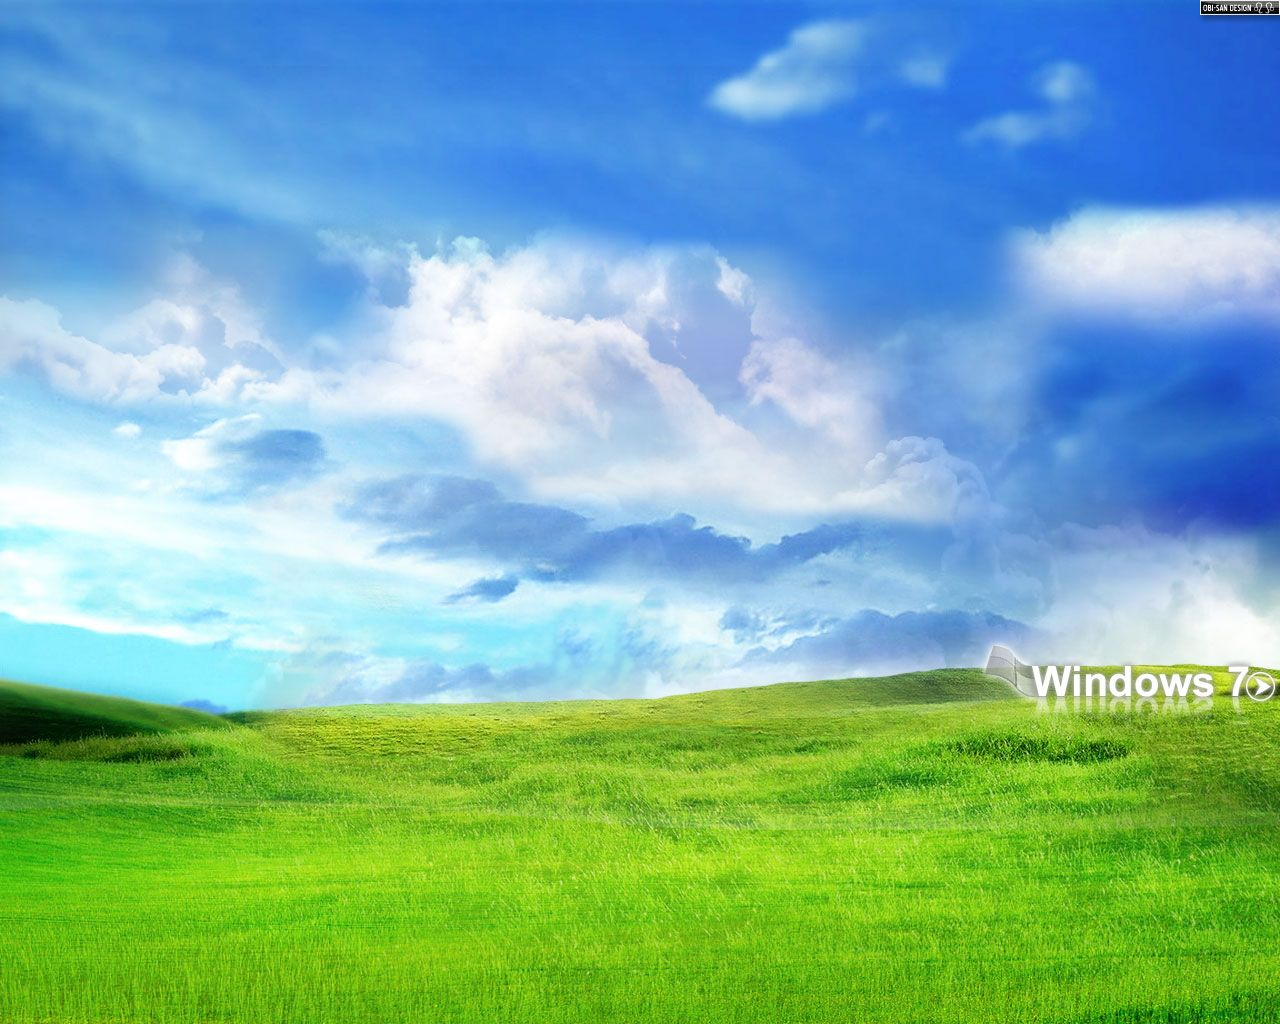 sky and grass wallpaper windows 7 system professional | windows